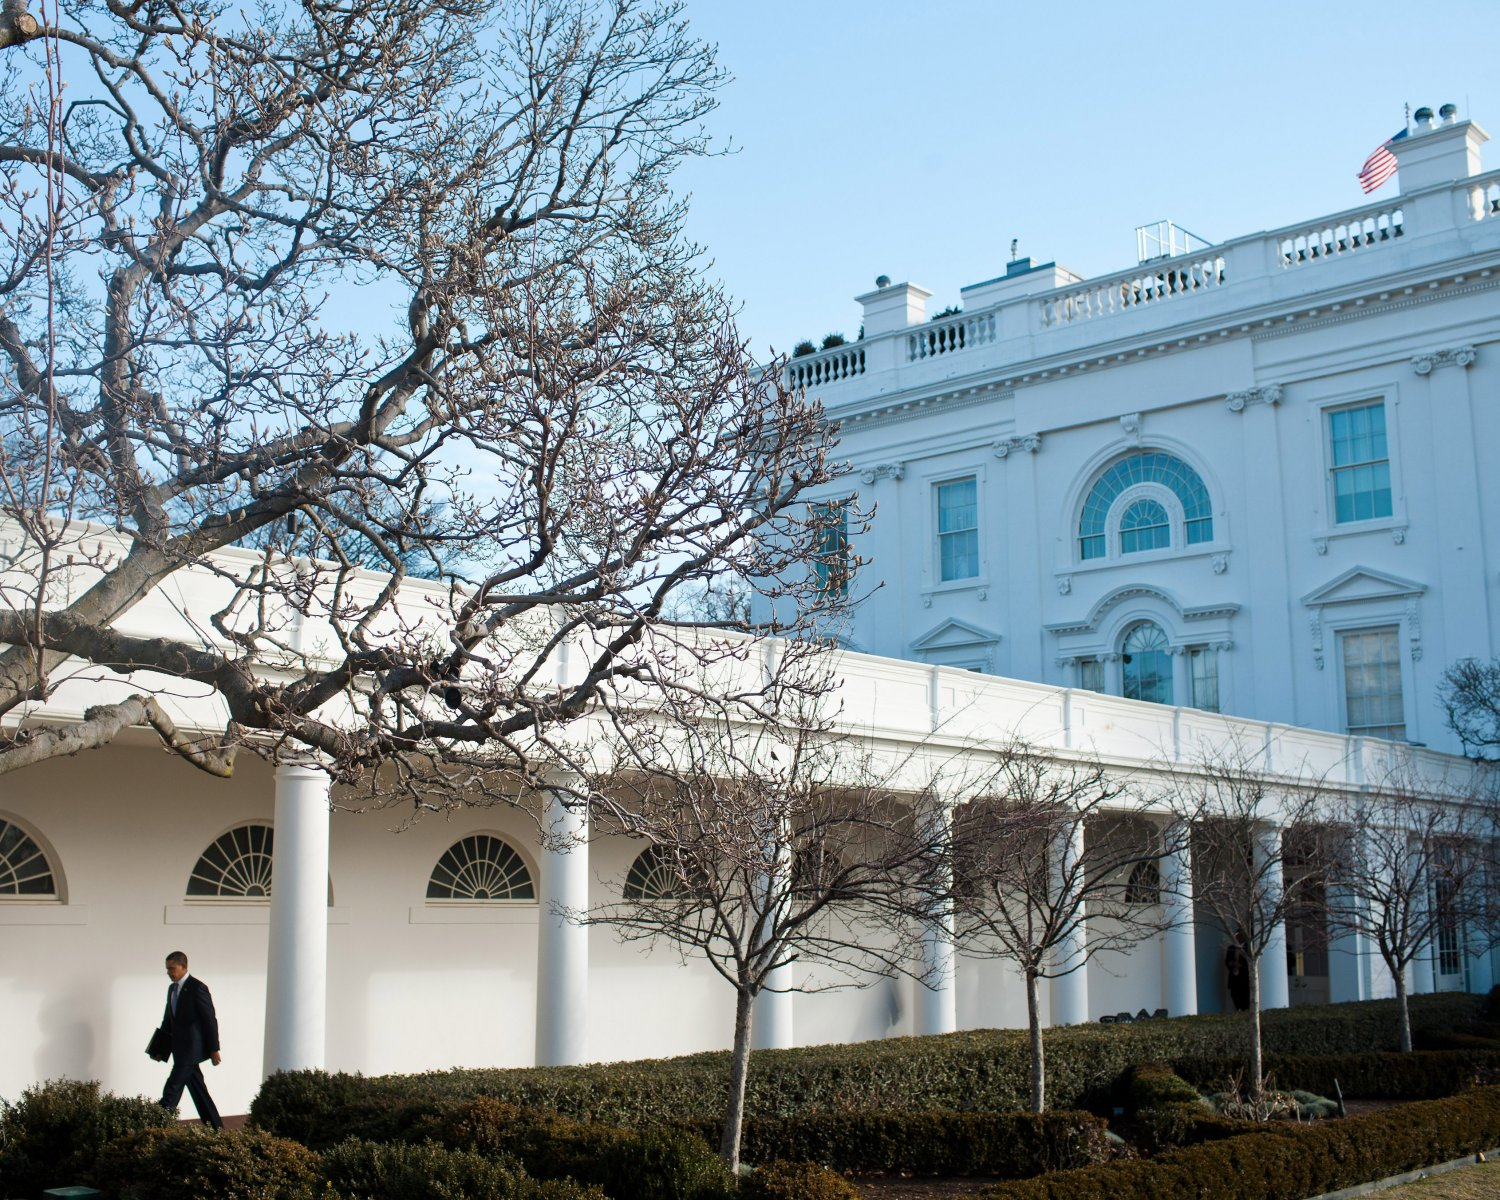 BARACK OBAMA WALKS ALONG THE WHITE HOUSE COLONNADE IN 2011 - 8X10 PHOTO (ZY-504)